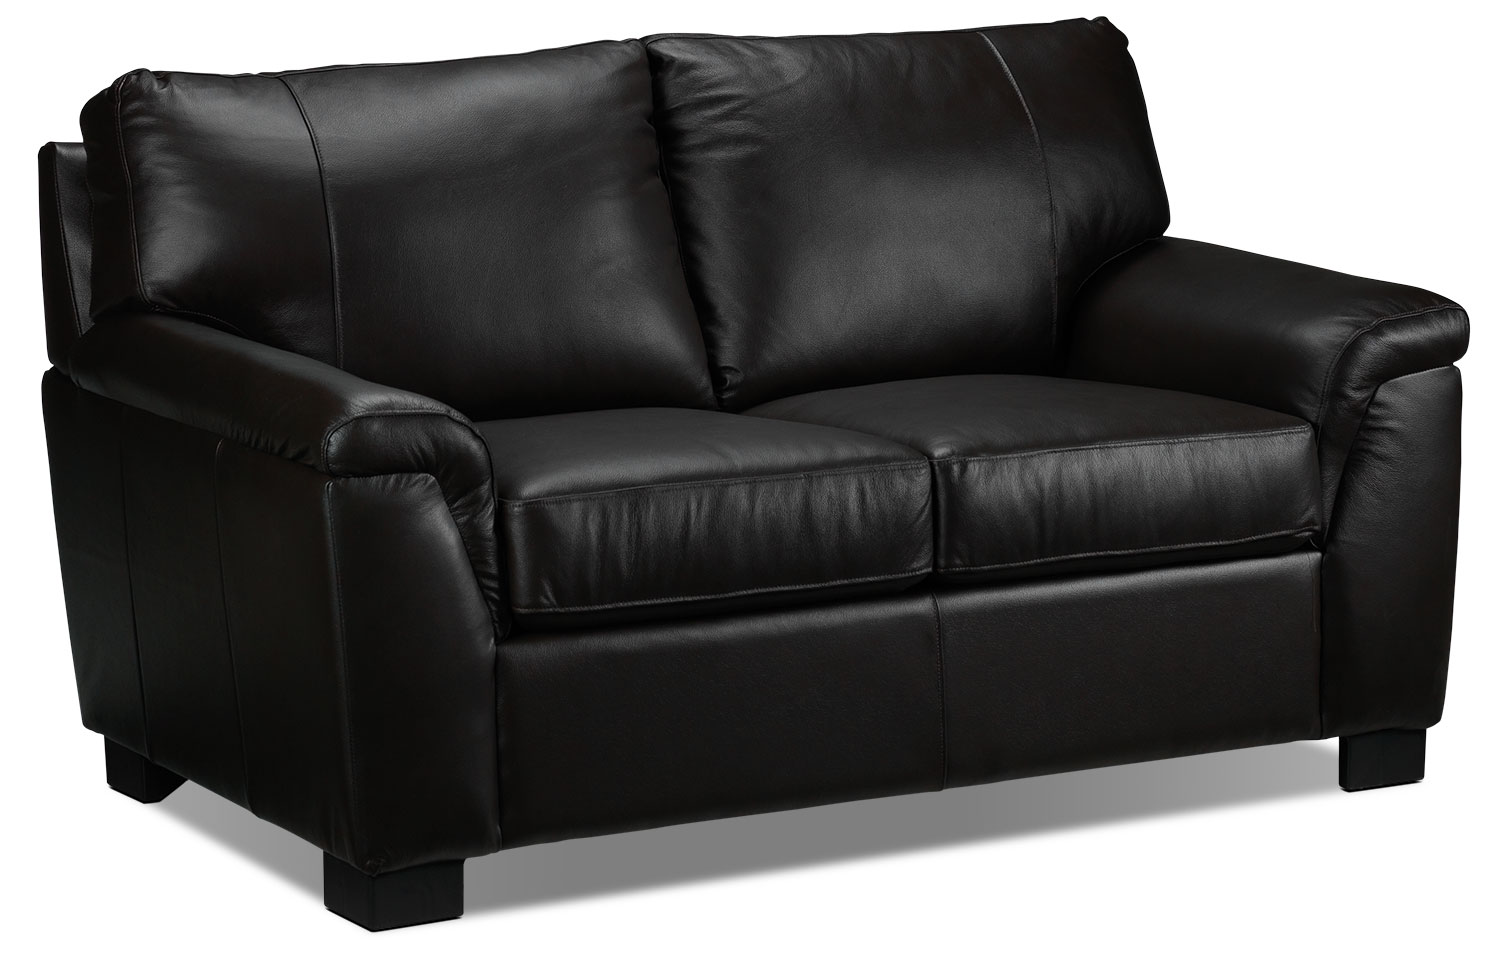 Living Room Furniture - Reynolds Loveseat - Coffee